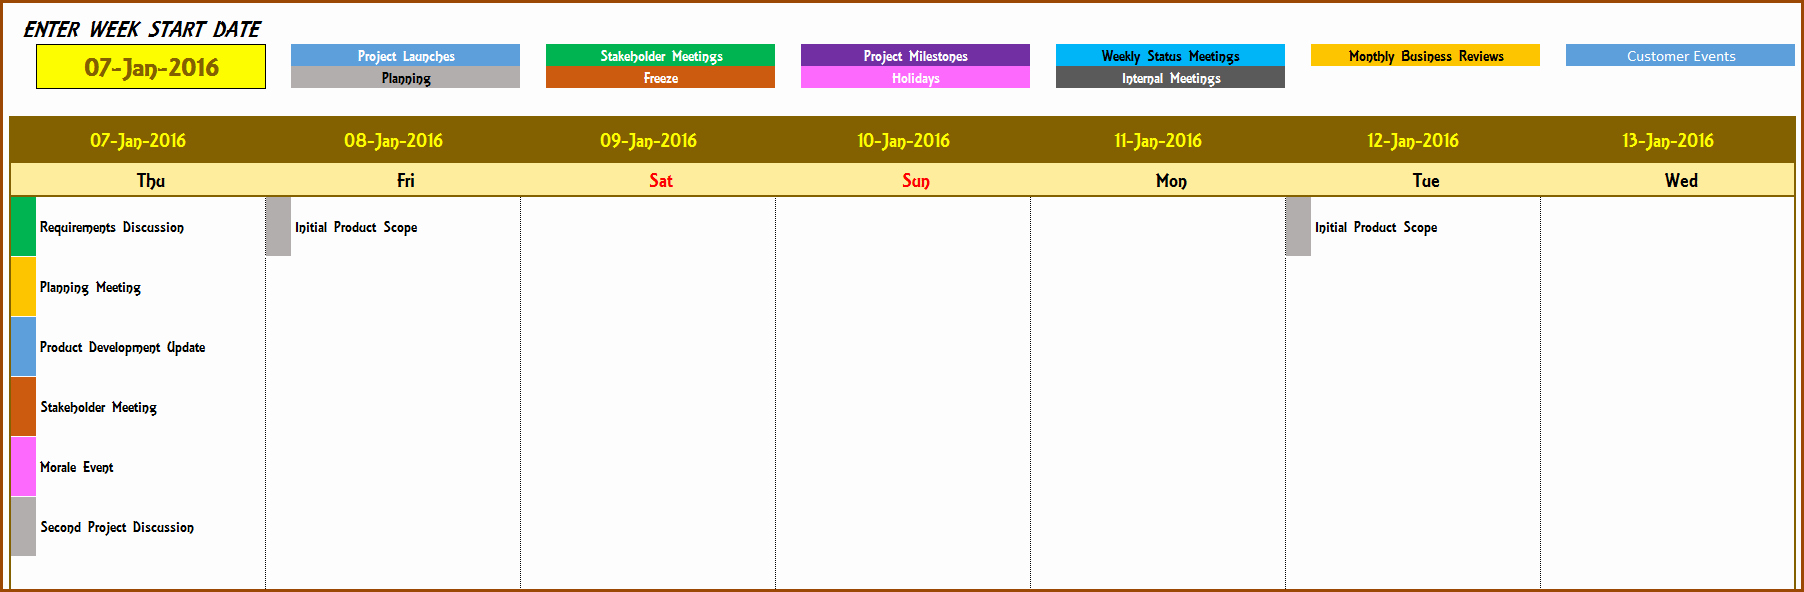 Calendar Of events Template Beautiful 2016 Weekly Calendar event Calendar Maker Excel Template